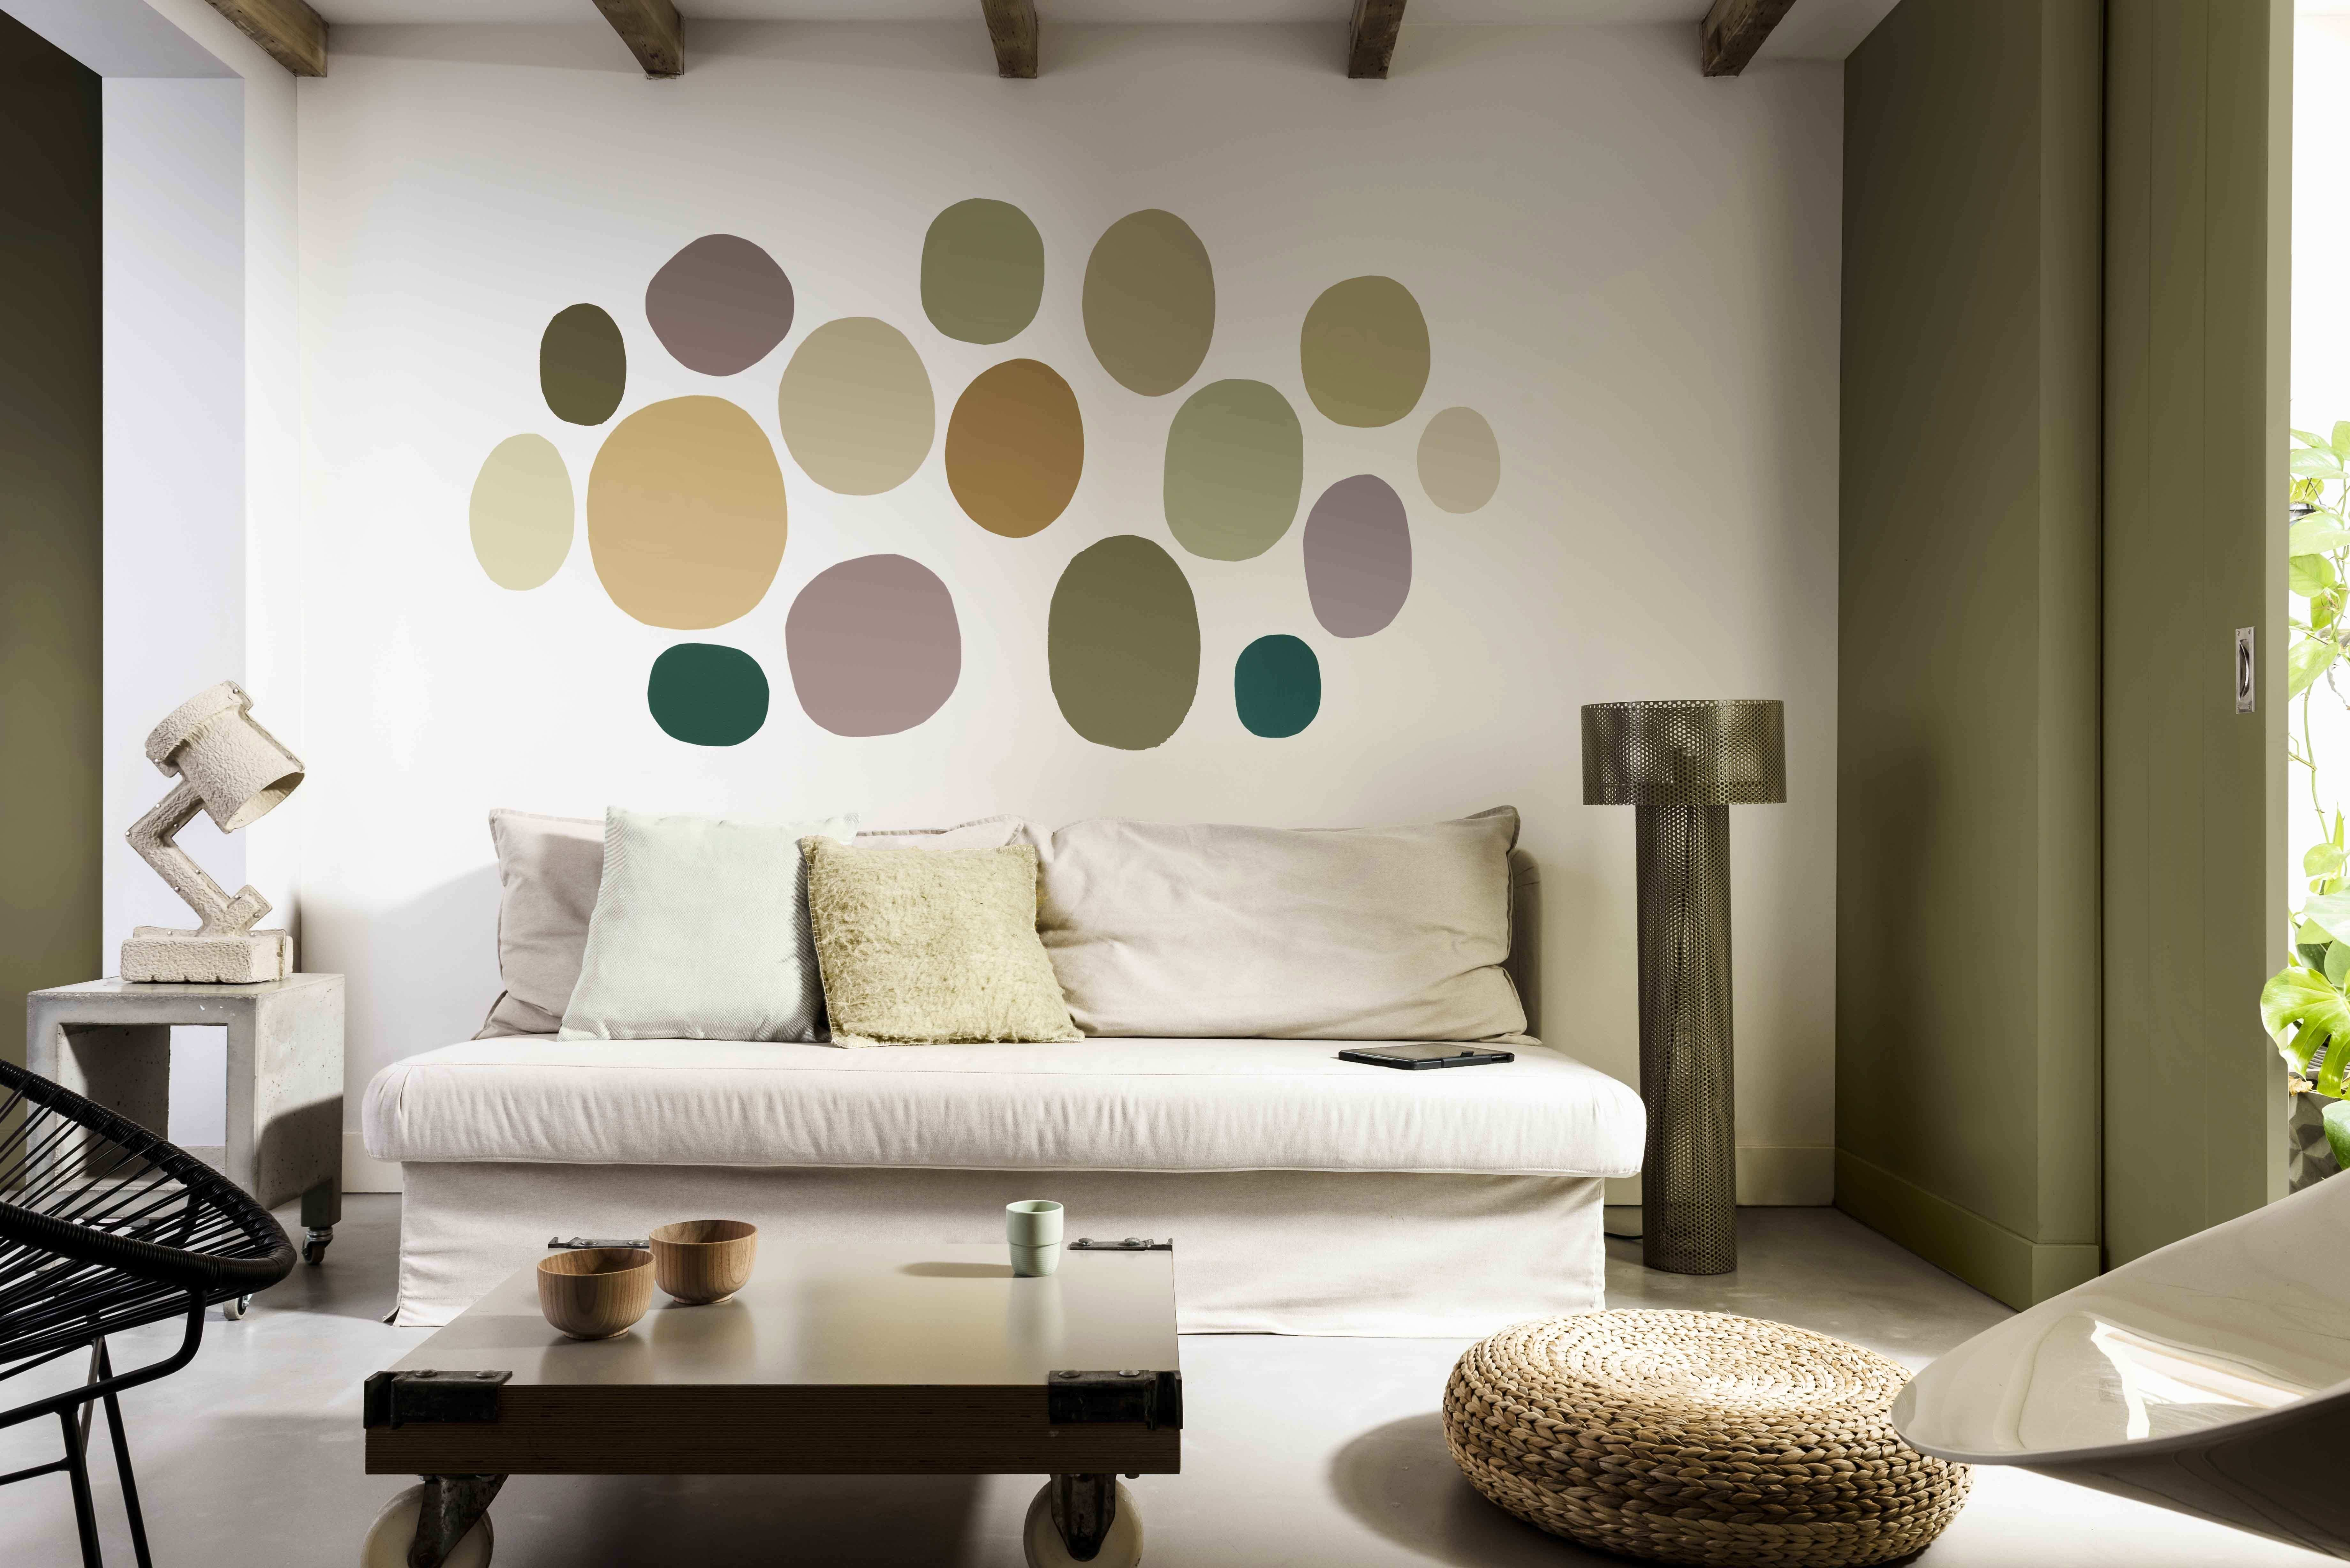 Pictures for Living Room Wall Lovely Living Room Wall Decor Excellent Wallpaper Design for Living Room